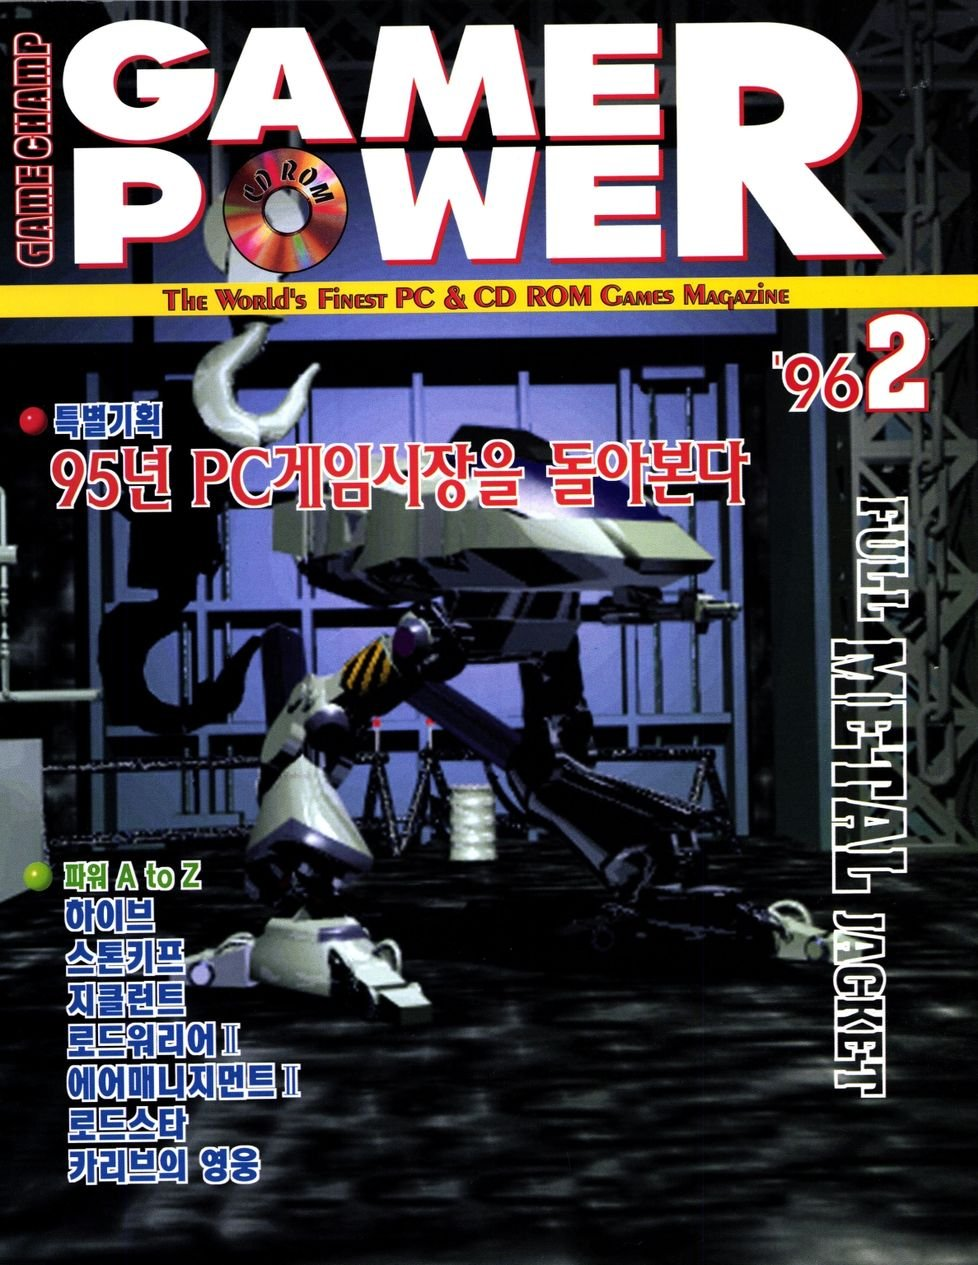 Game Power Issue 023 (February 1996)